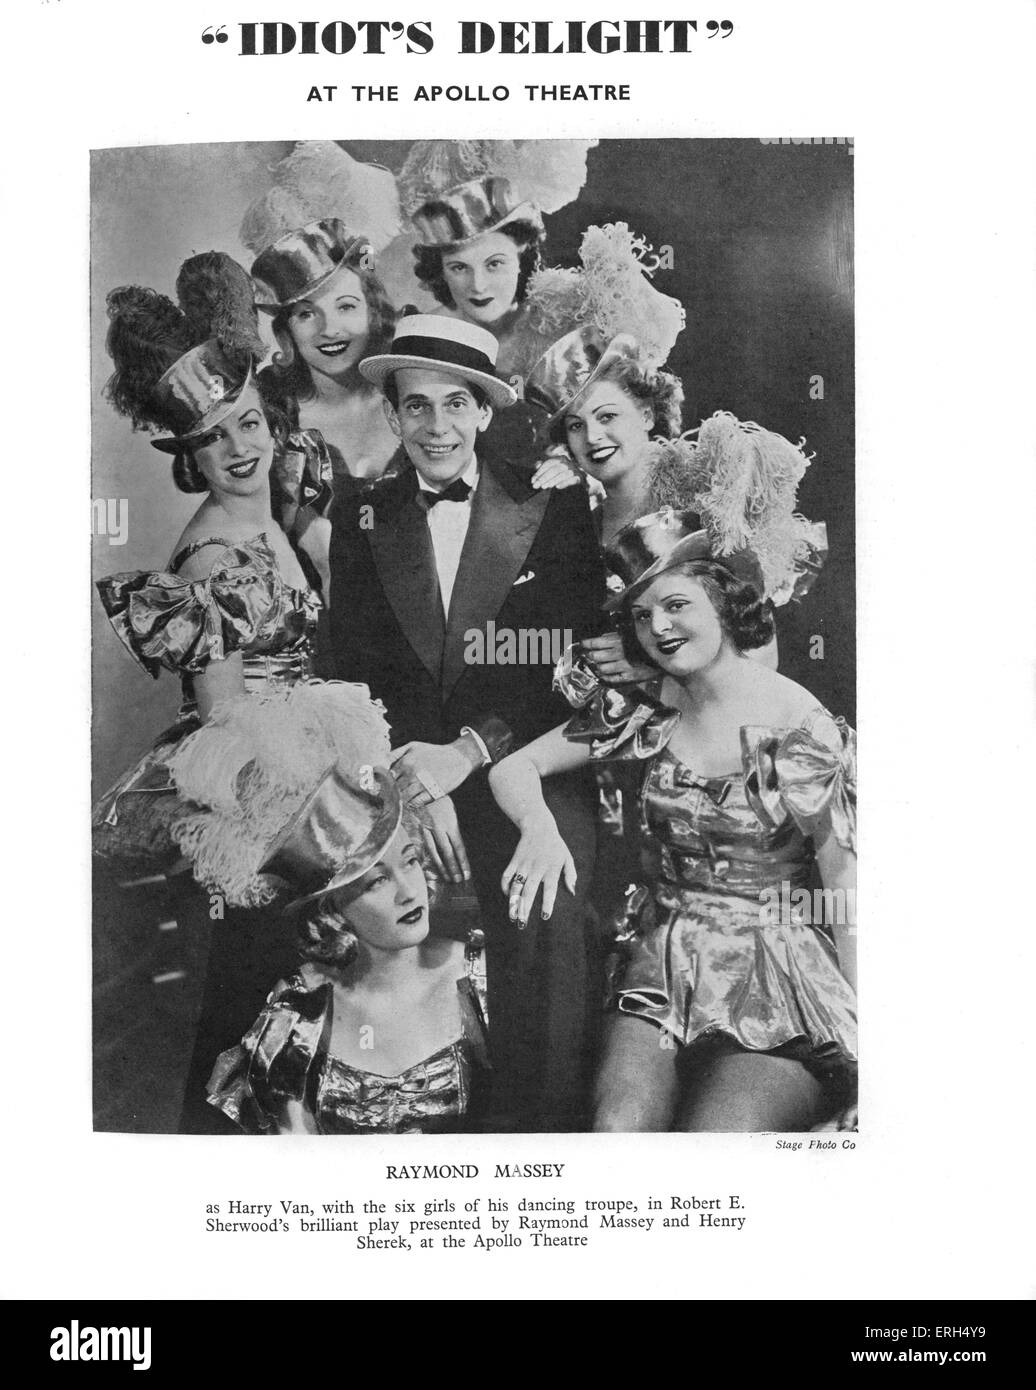 'Idiot's Delight' by Robert E. Sherwood with Raymond Massey as Harry Van and six girls of his dancing - Stock Image